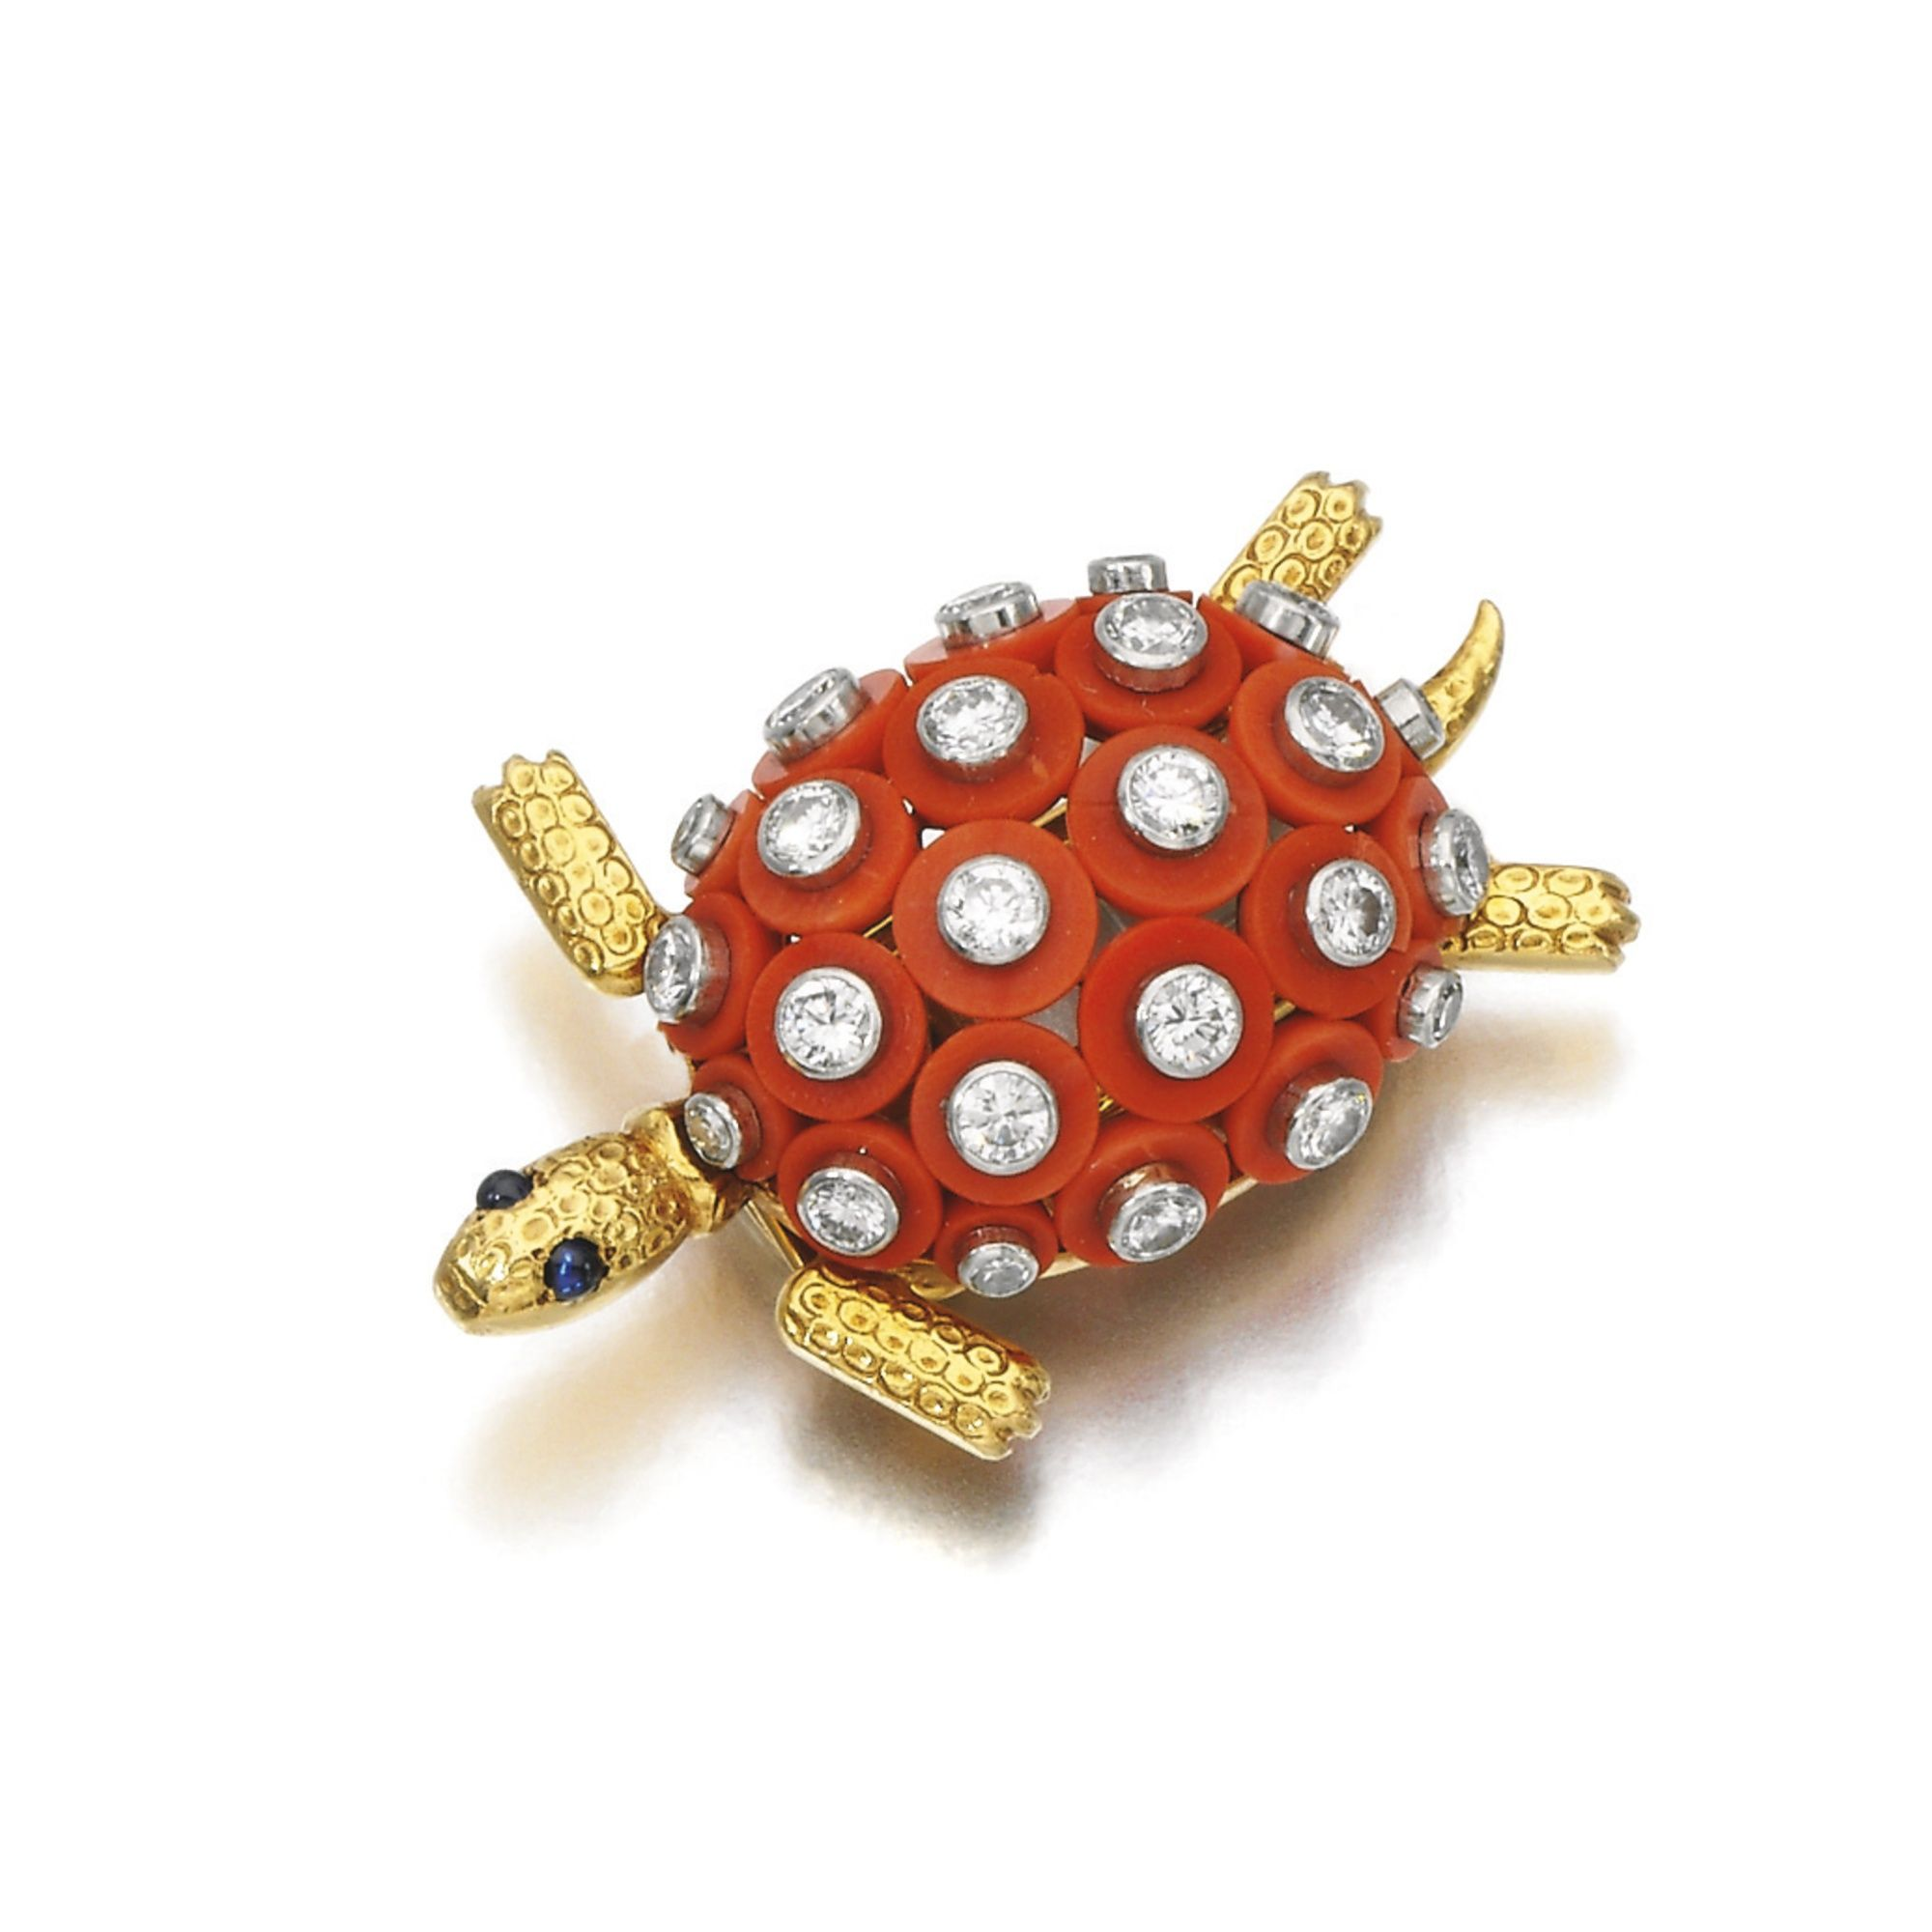 Coral and diamond brooch, Cartier, 1960s Designed as a turtle, the body decorated with coral discs set with circular- and single-cut diamonds, with textured flippers and cabochon sapphire eyes, signed Cartier, numbered, French assay and maker's marks.